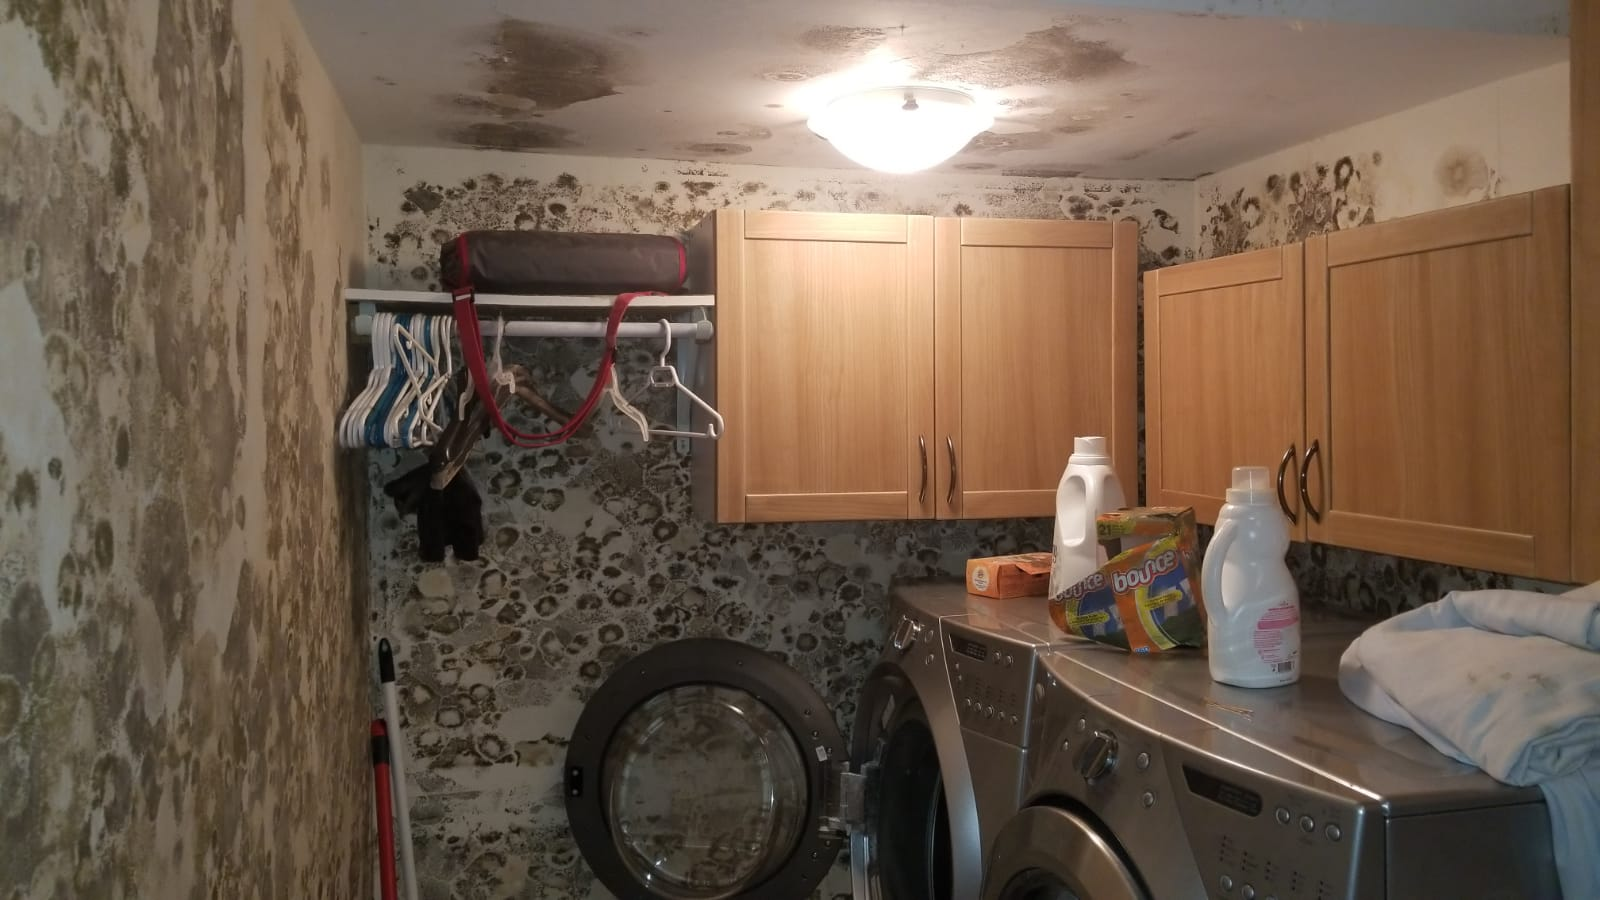 mold removal in dorval, mold remediation in dorval, mold inspection in dorval, getting rid of mold, mold dangers in dorval